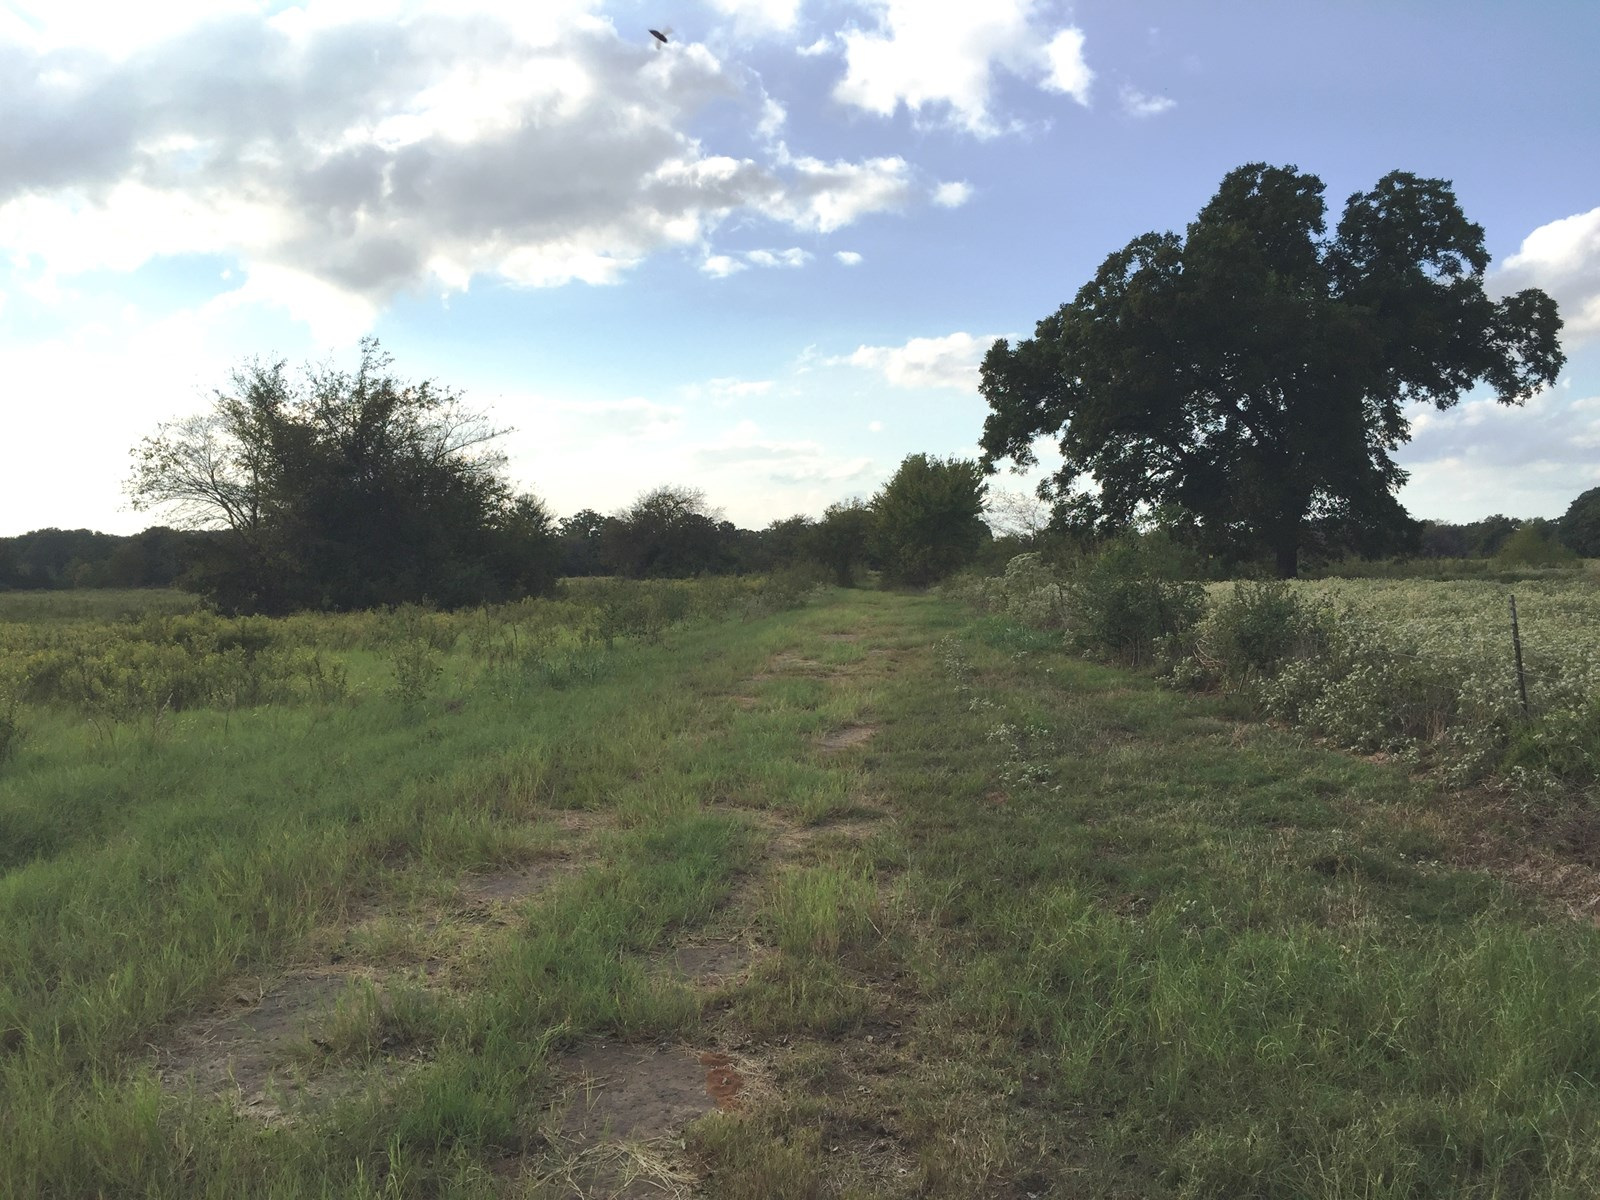 Sold - EAST TEXAS LAND FOR SALE NEAR LAKE FORK IN ALBA TEXAS